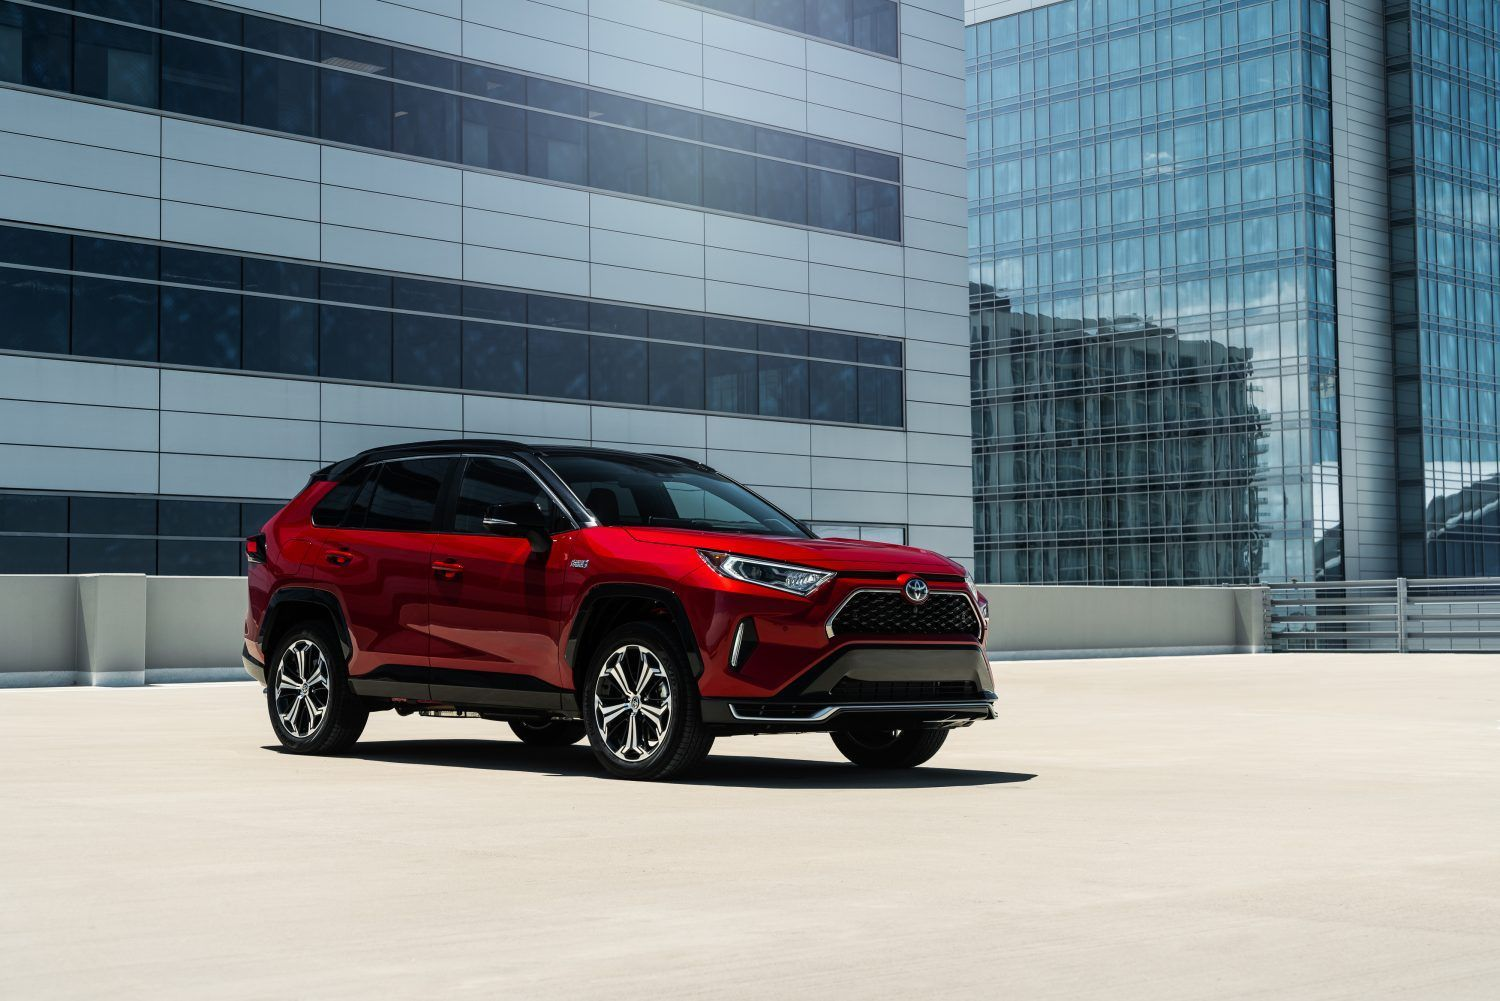 2021 Toyota Rav4 Prime Review Trims Features Prices And Rivals Toyota Usa Toyota Rav4 Hybrid Car